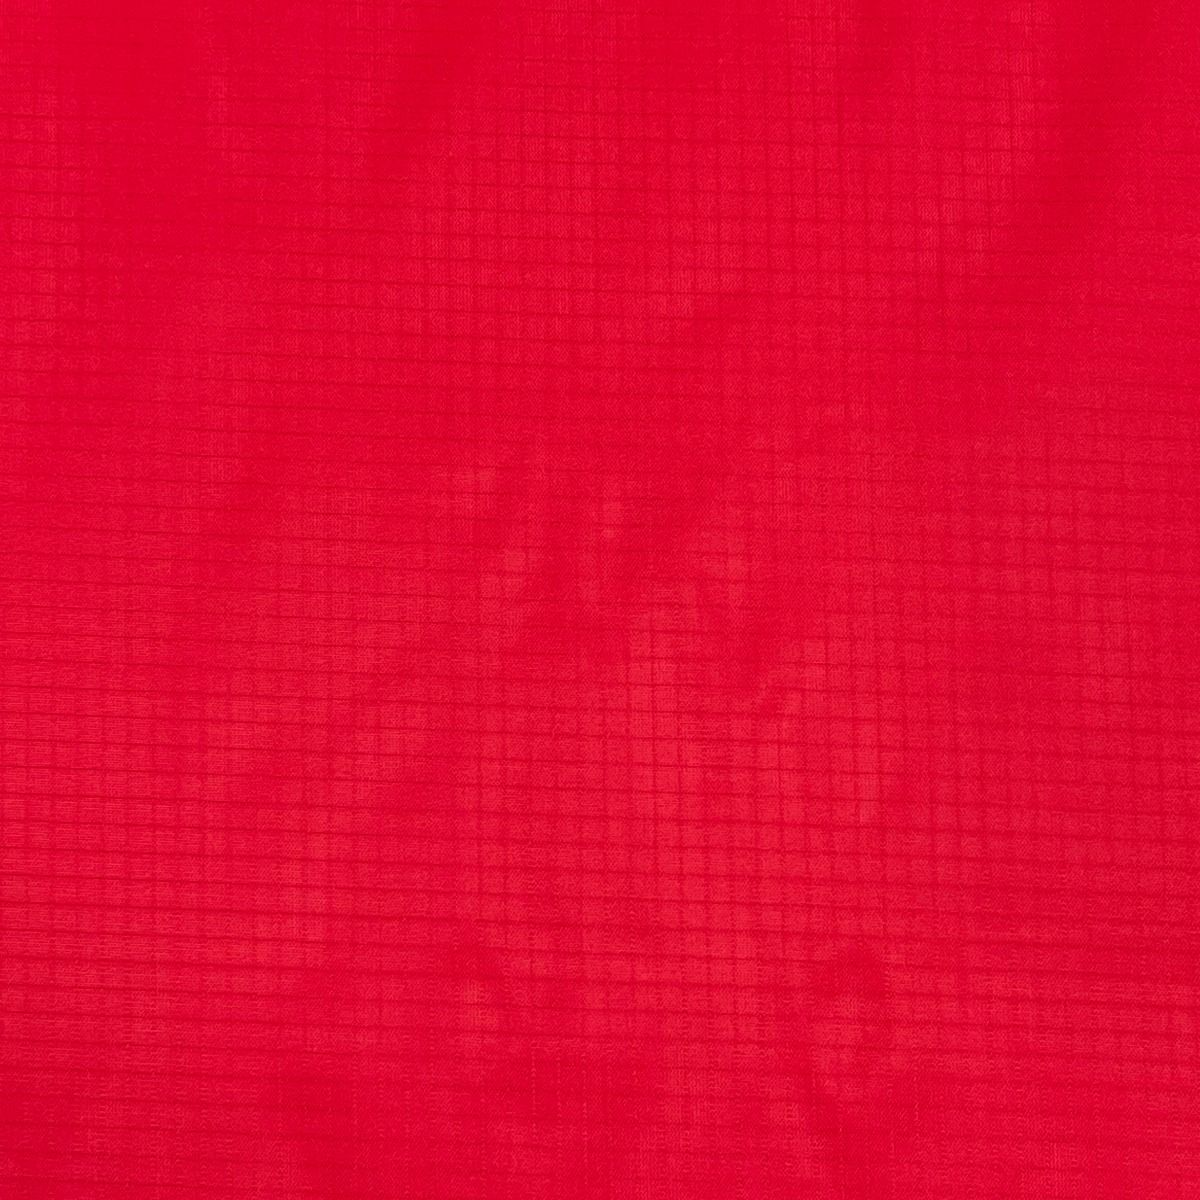 Ripstop Fabric Waterproof Material - Solid Red